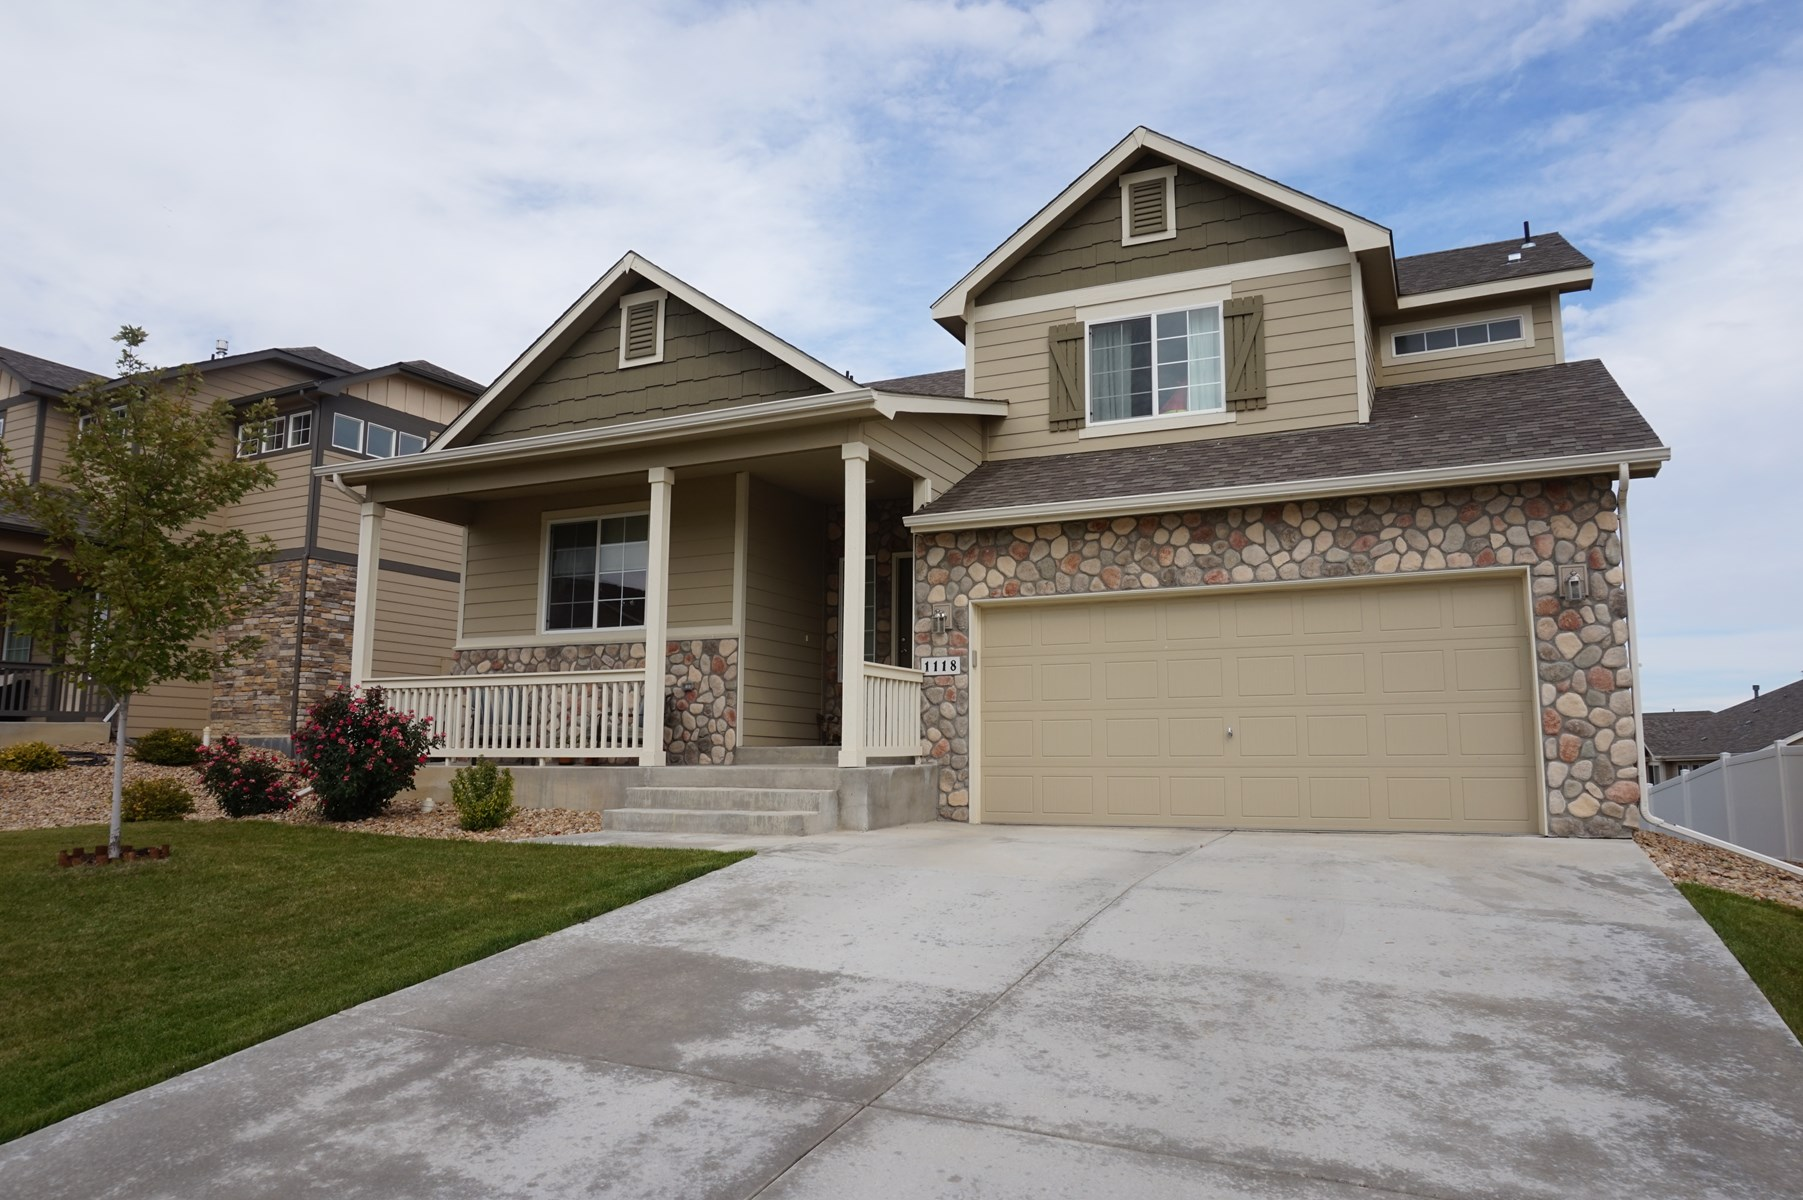 Homes in Town For Sale Greeley Colorado Weld County